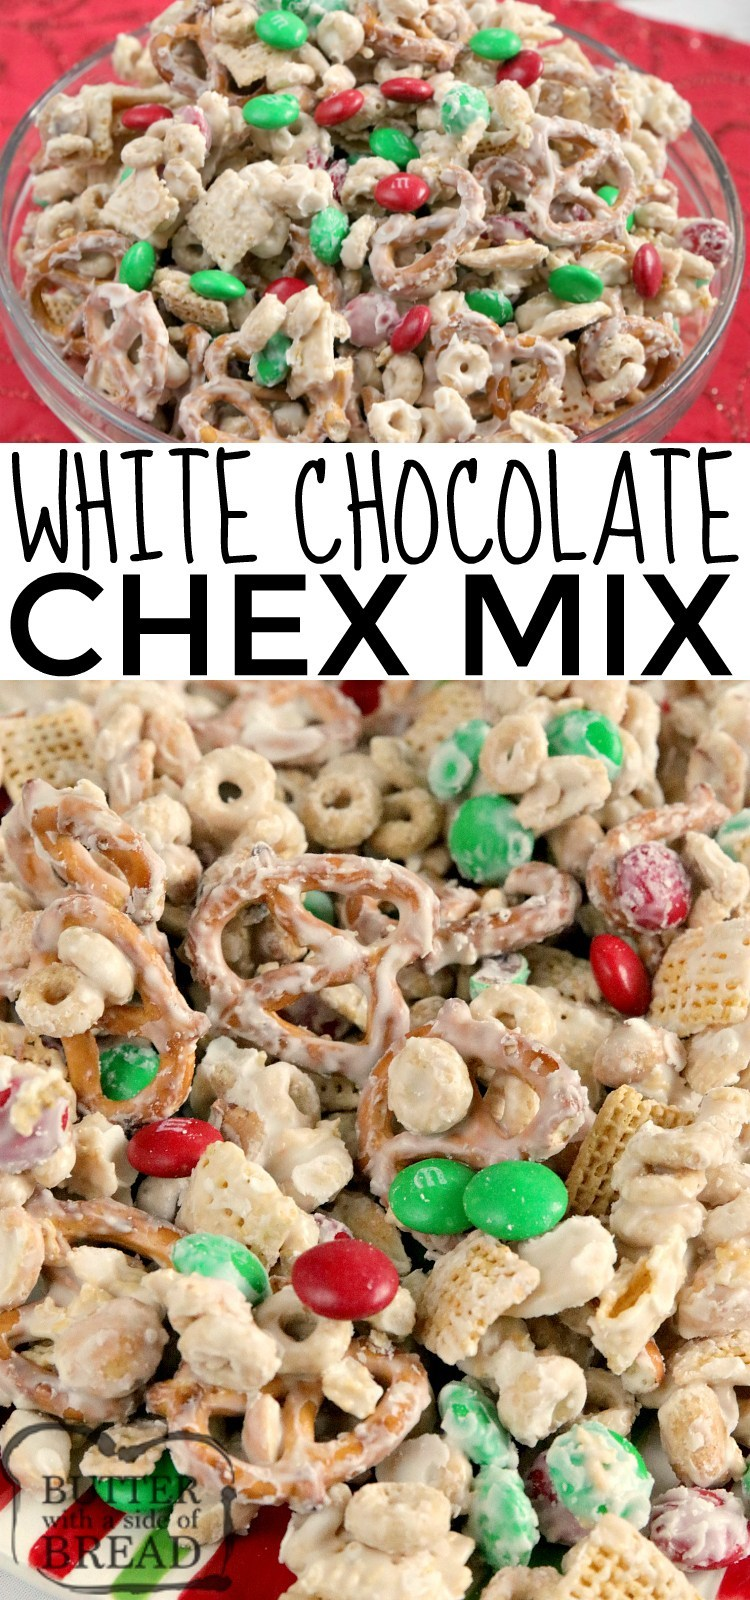 White Chocolate Chex Mix is made with cereal, pretzels, peanuts and M&Ms all coated in white chocolate. This easy chex mix recipe is salty and sweet and comes together in less than 5 minutes!